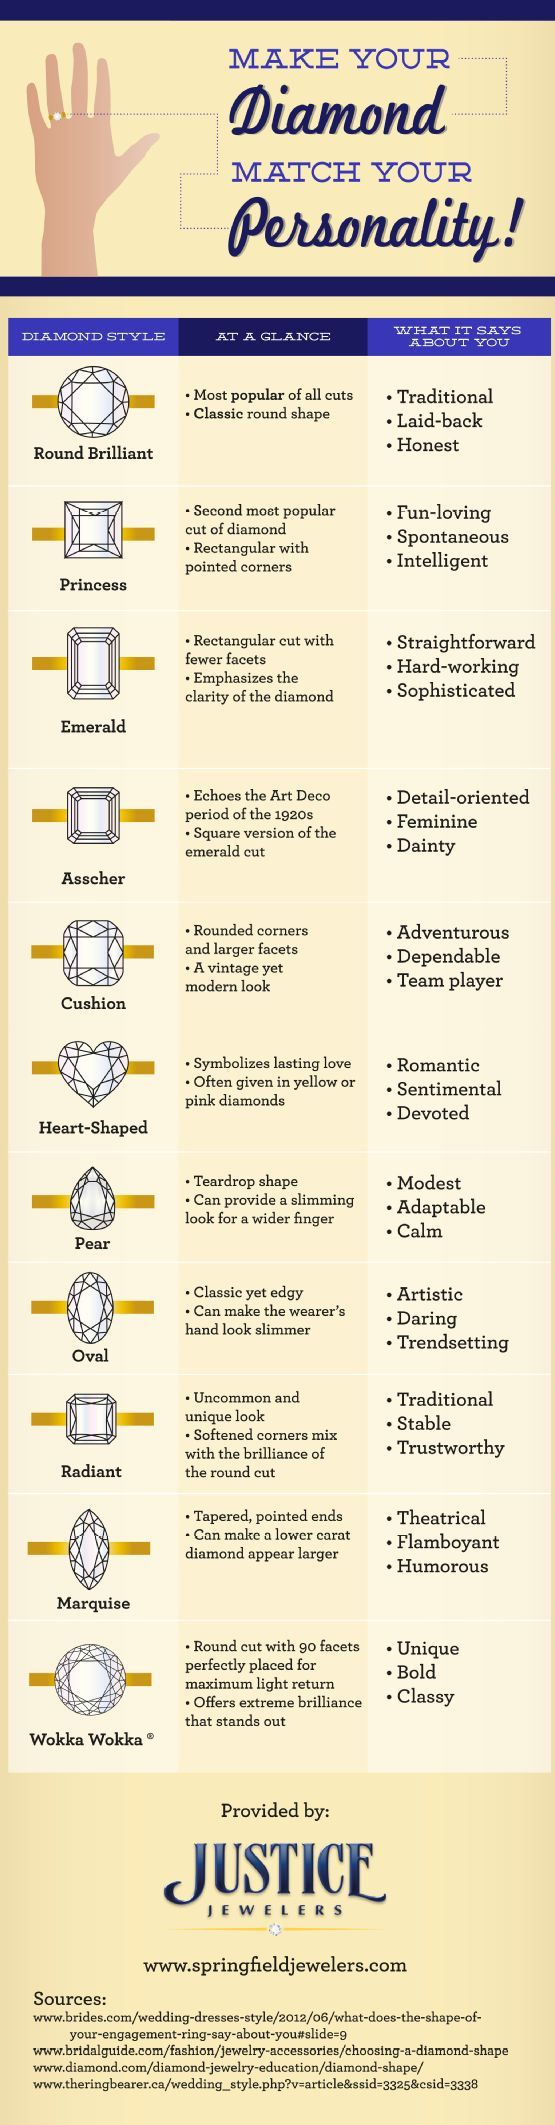 That's actually really cool. What the shape of your diamond says about your personality.